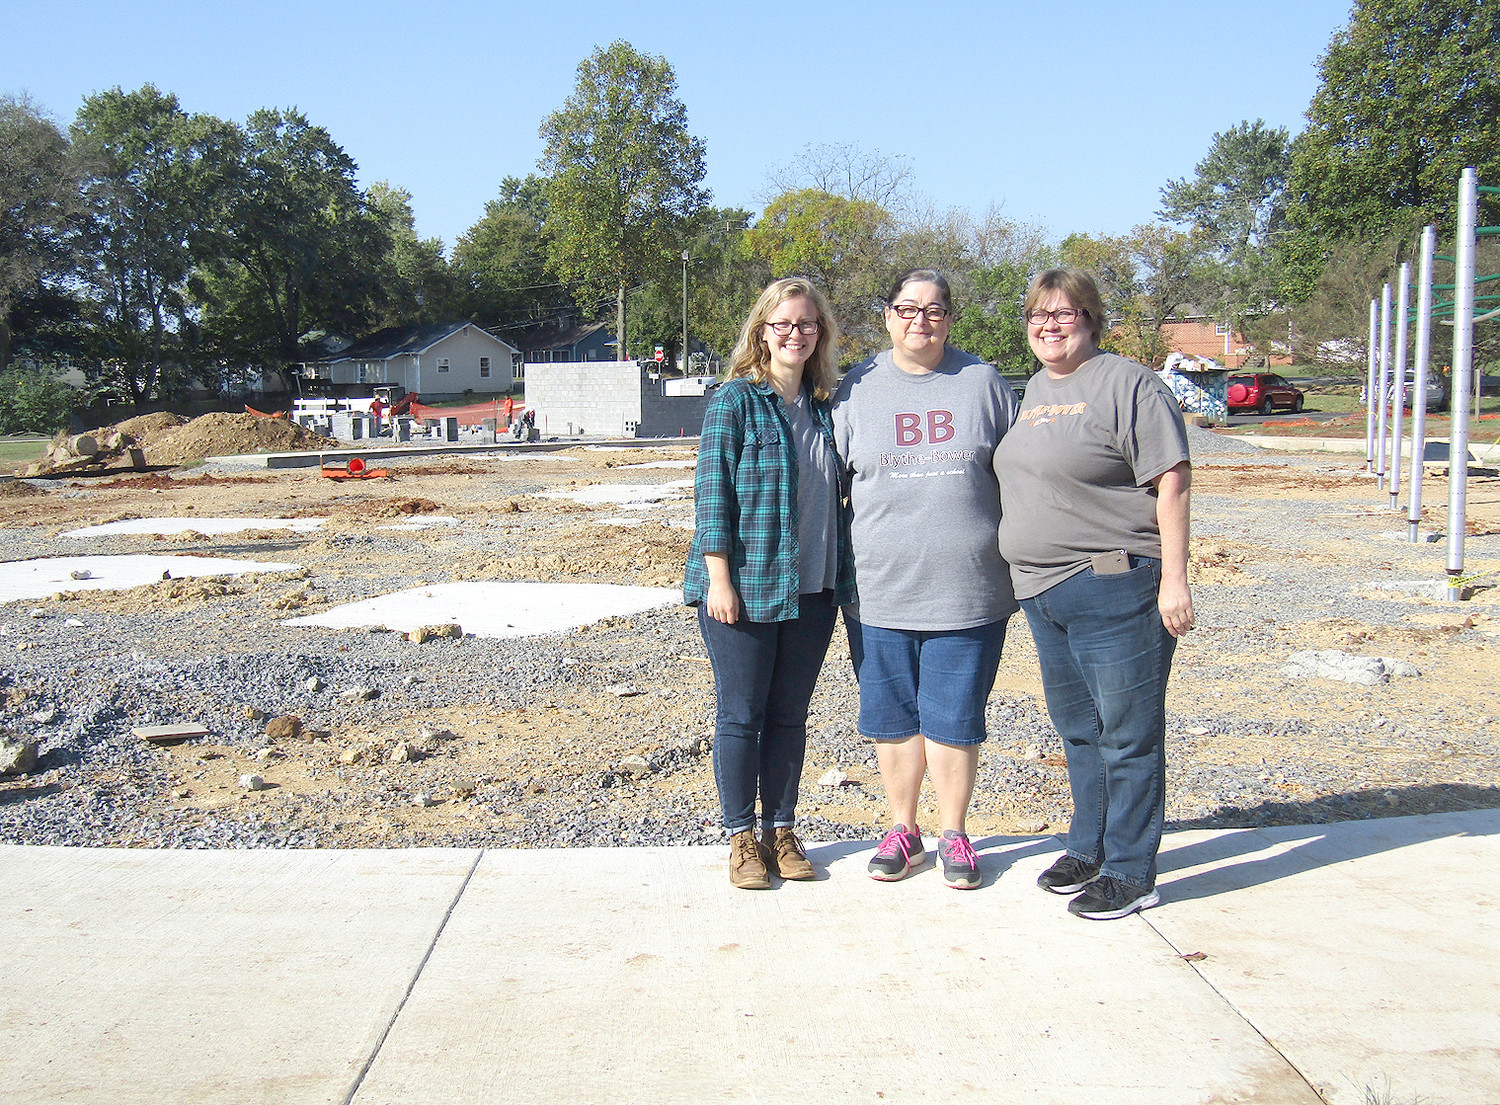 The Blythe-Oldfield Community is anxiously awaiting the completion of its new playground pavilion complex. From left are Melanie Brubaker, an AmeriCorps VISTA with Impact Cleveland; Shirley Knight, treasurer, Blythe-Oldfield Community Association; and Julia Porter, president, Blythe-Oldfield Community Association.